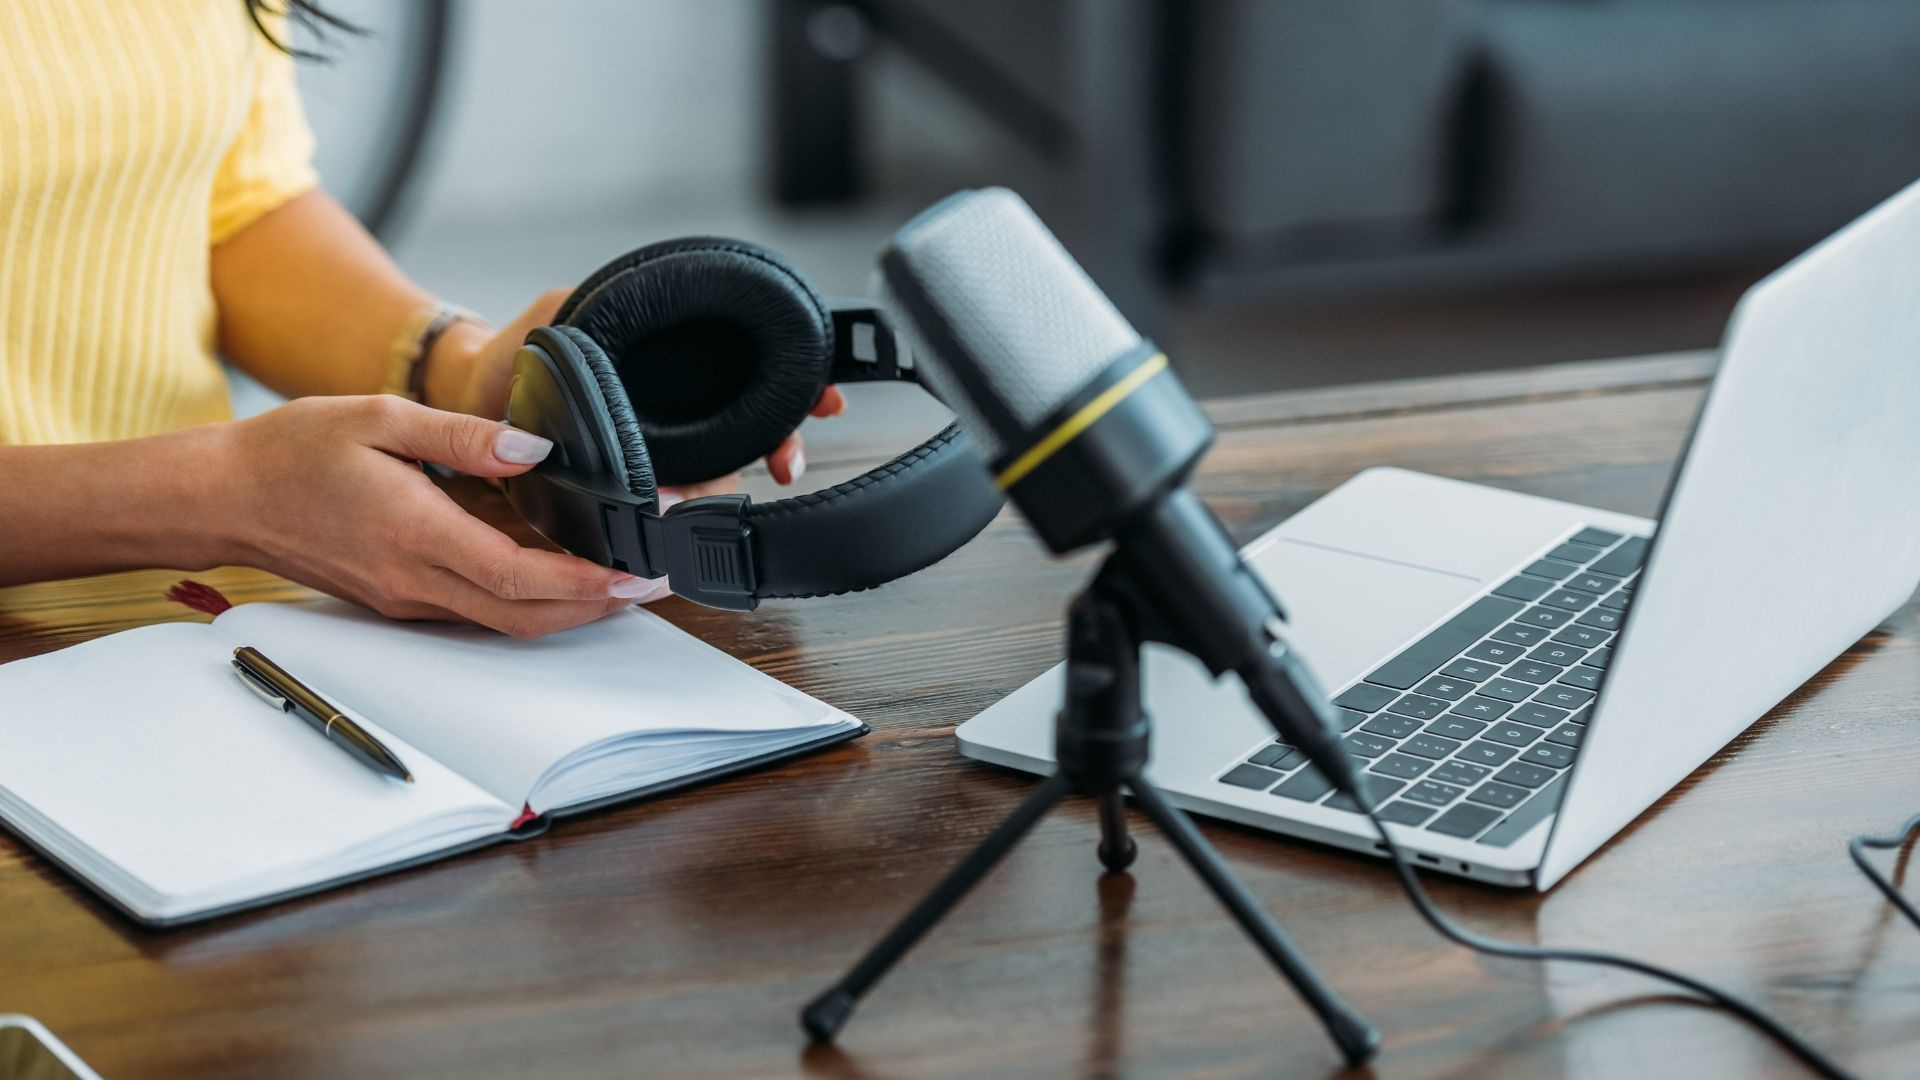 Fantastic Video Podcasts and How to Record Them